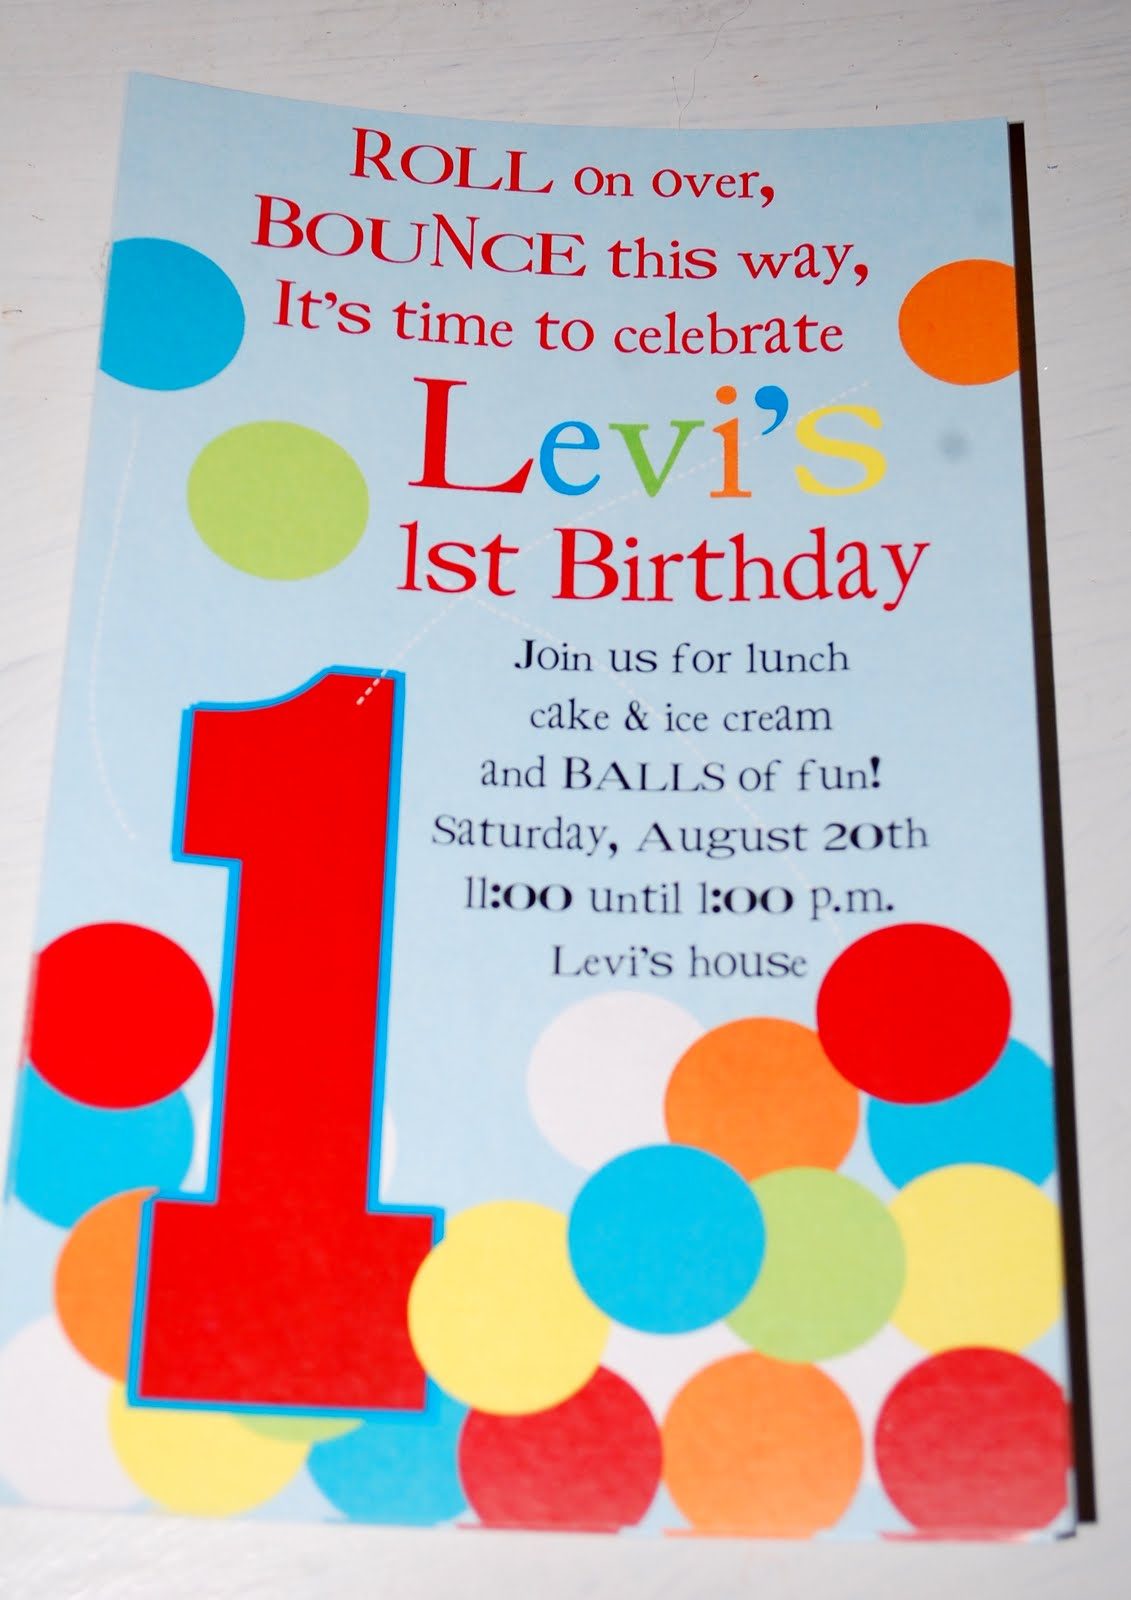 Baby Face Design: Bouncey Ball birthday invitations